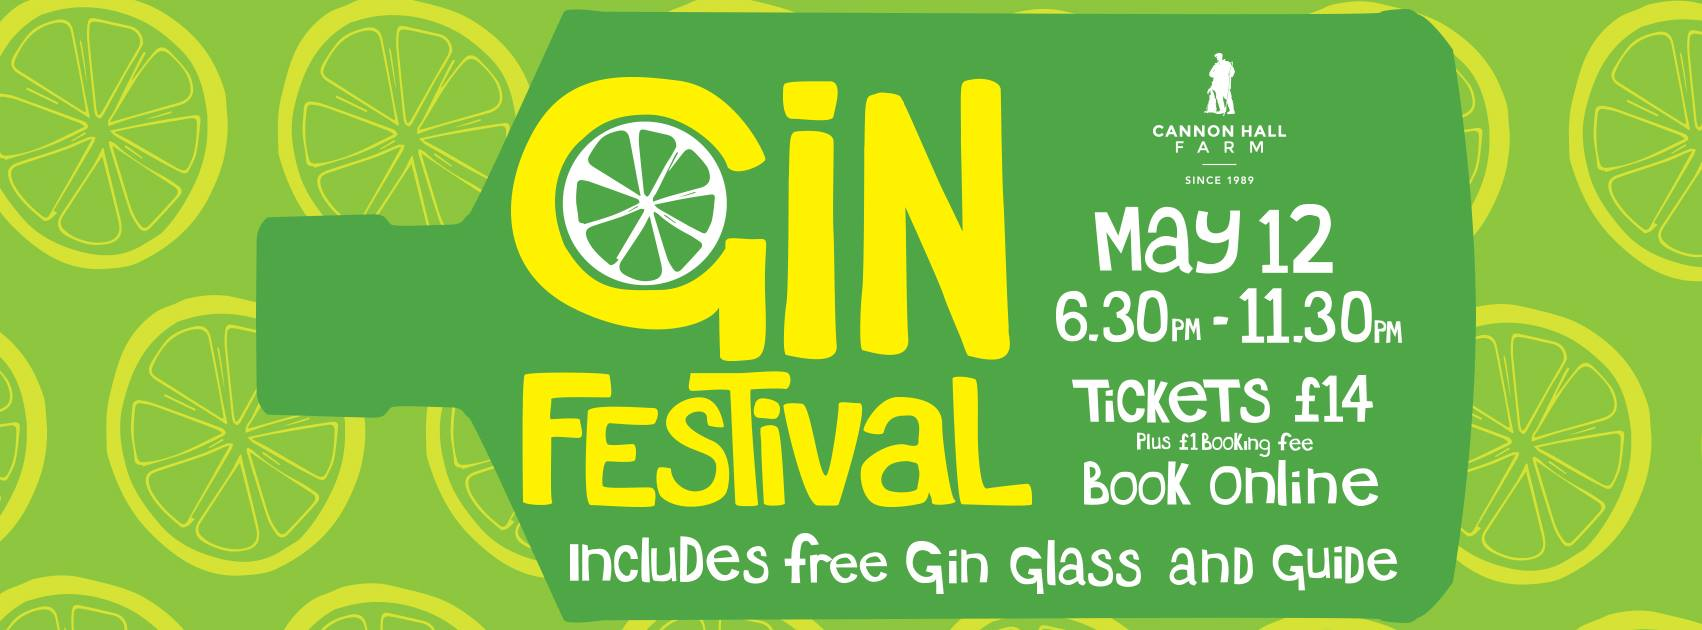 Cannon Hall Farm Gin Festival